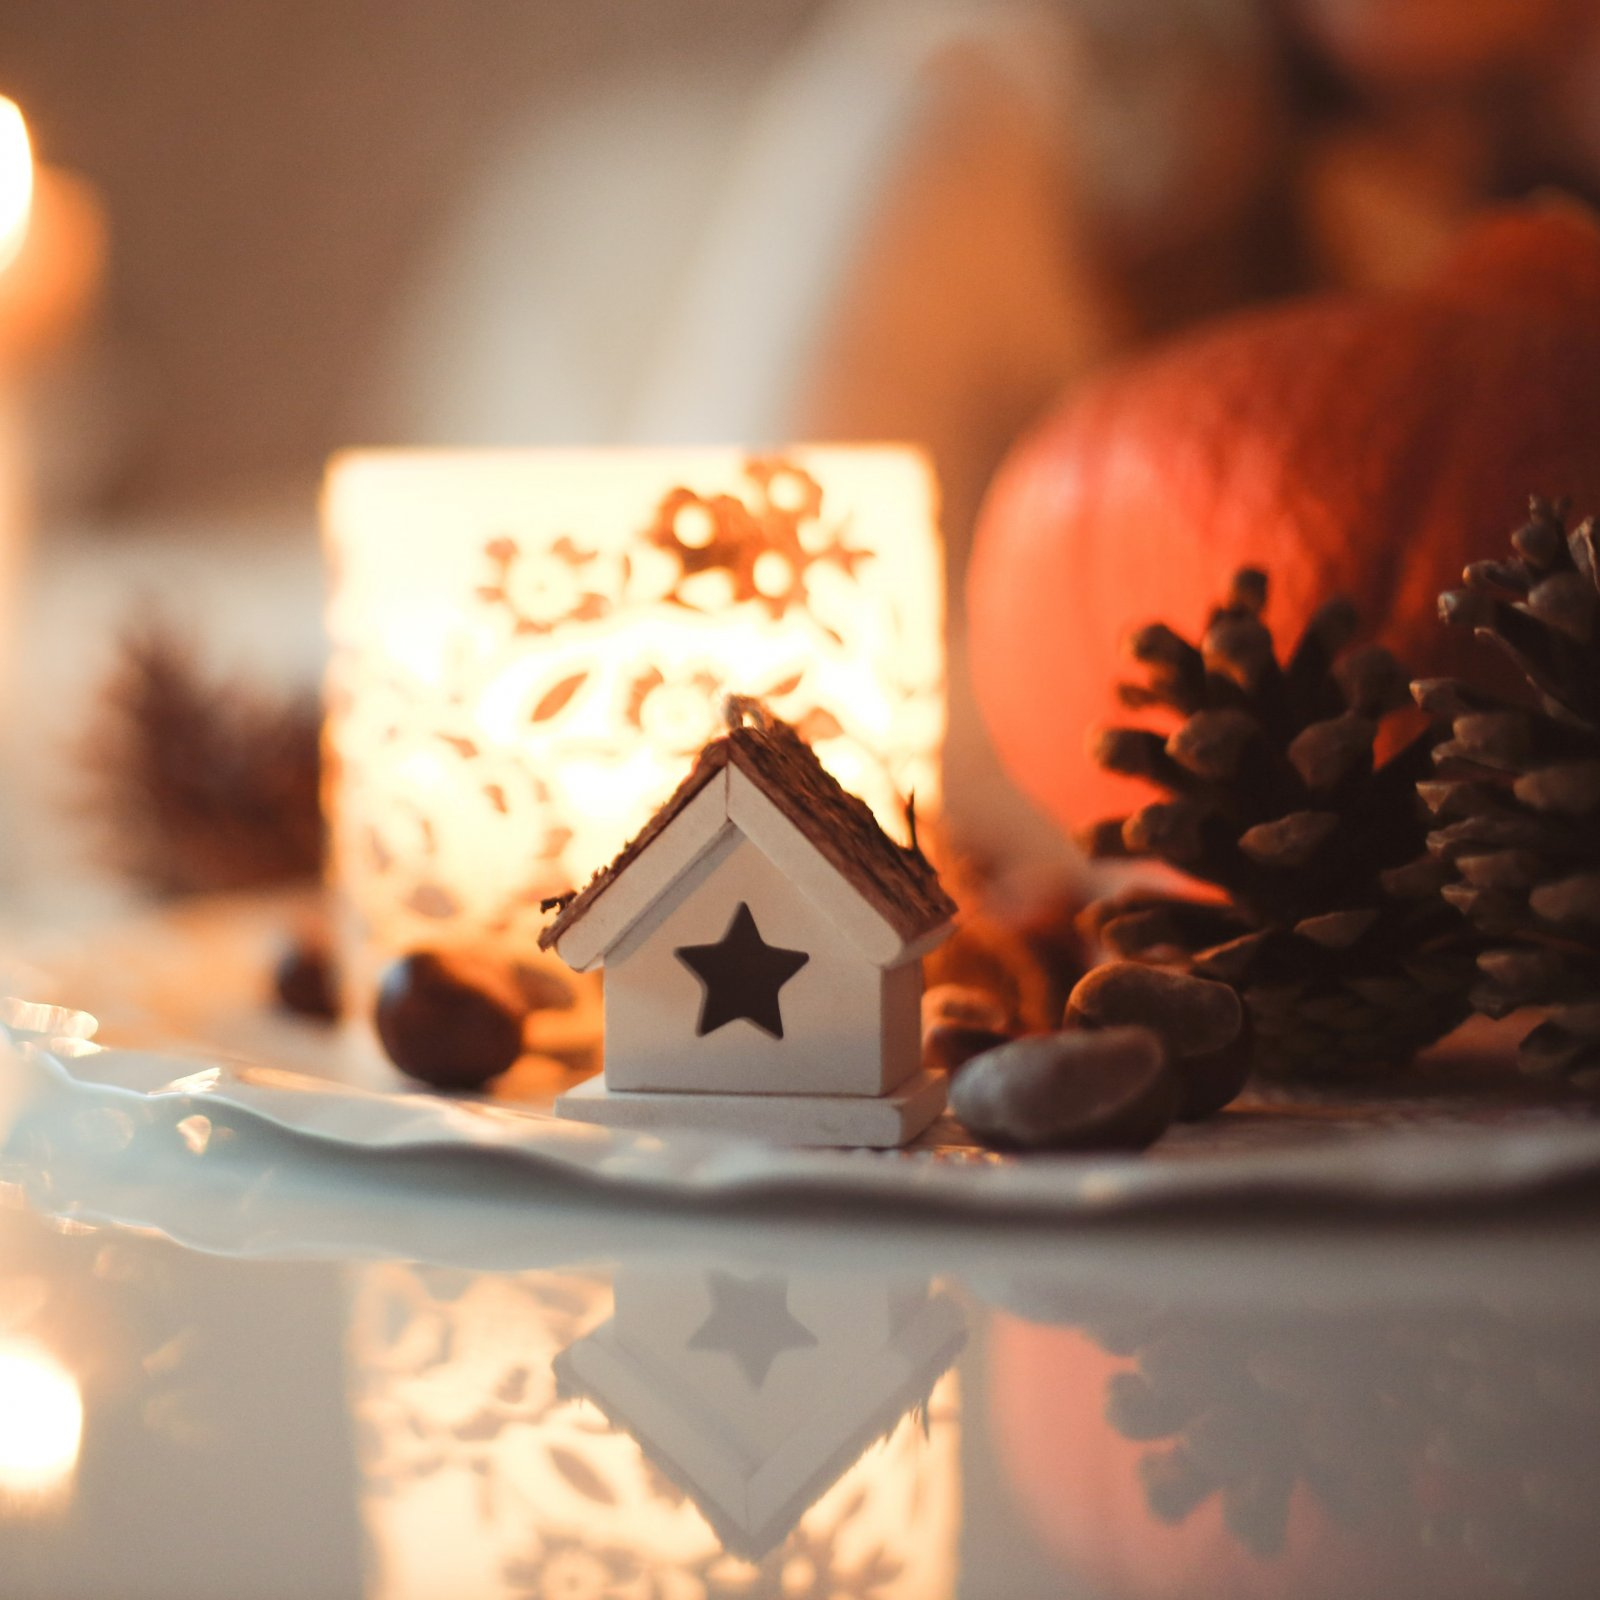 812 Candle - Home for the Holidays